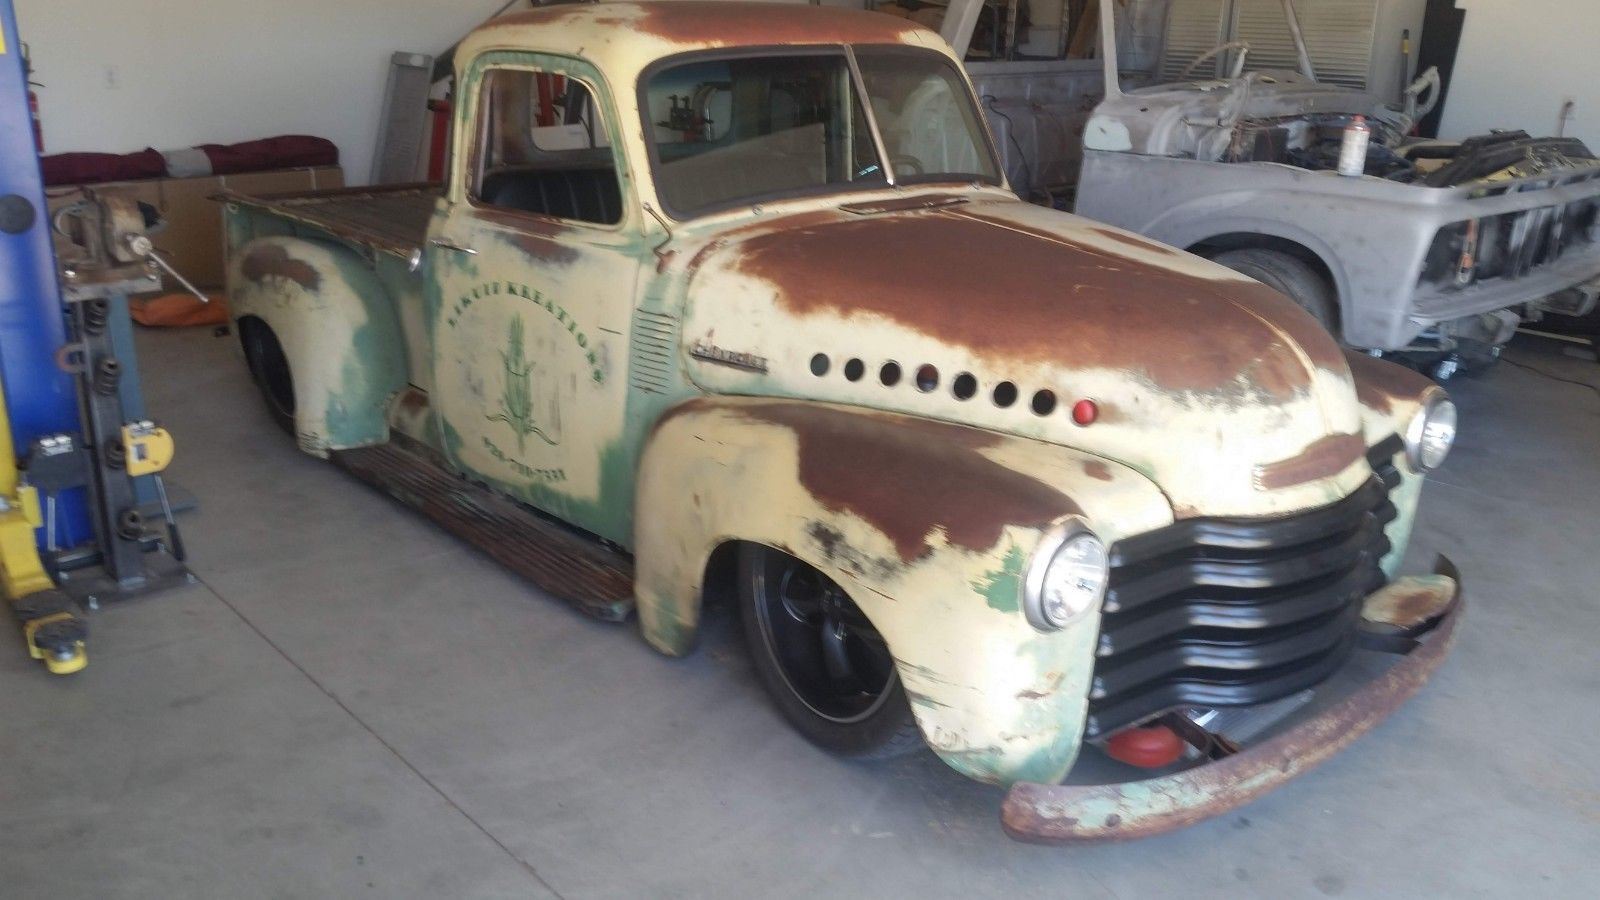 1953 Chevrolet Other Pickups 1953 Chevy 3100 Shop Truck Rat Rod Hot Rod Patina Twin Turbo C10 Air Ride 2018 2019 Is In Stock And For Sale Mycarboard Com